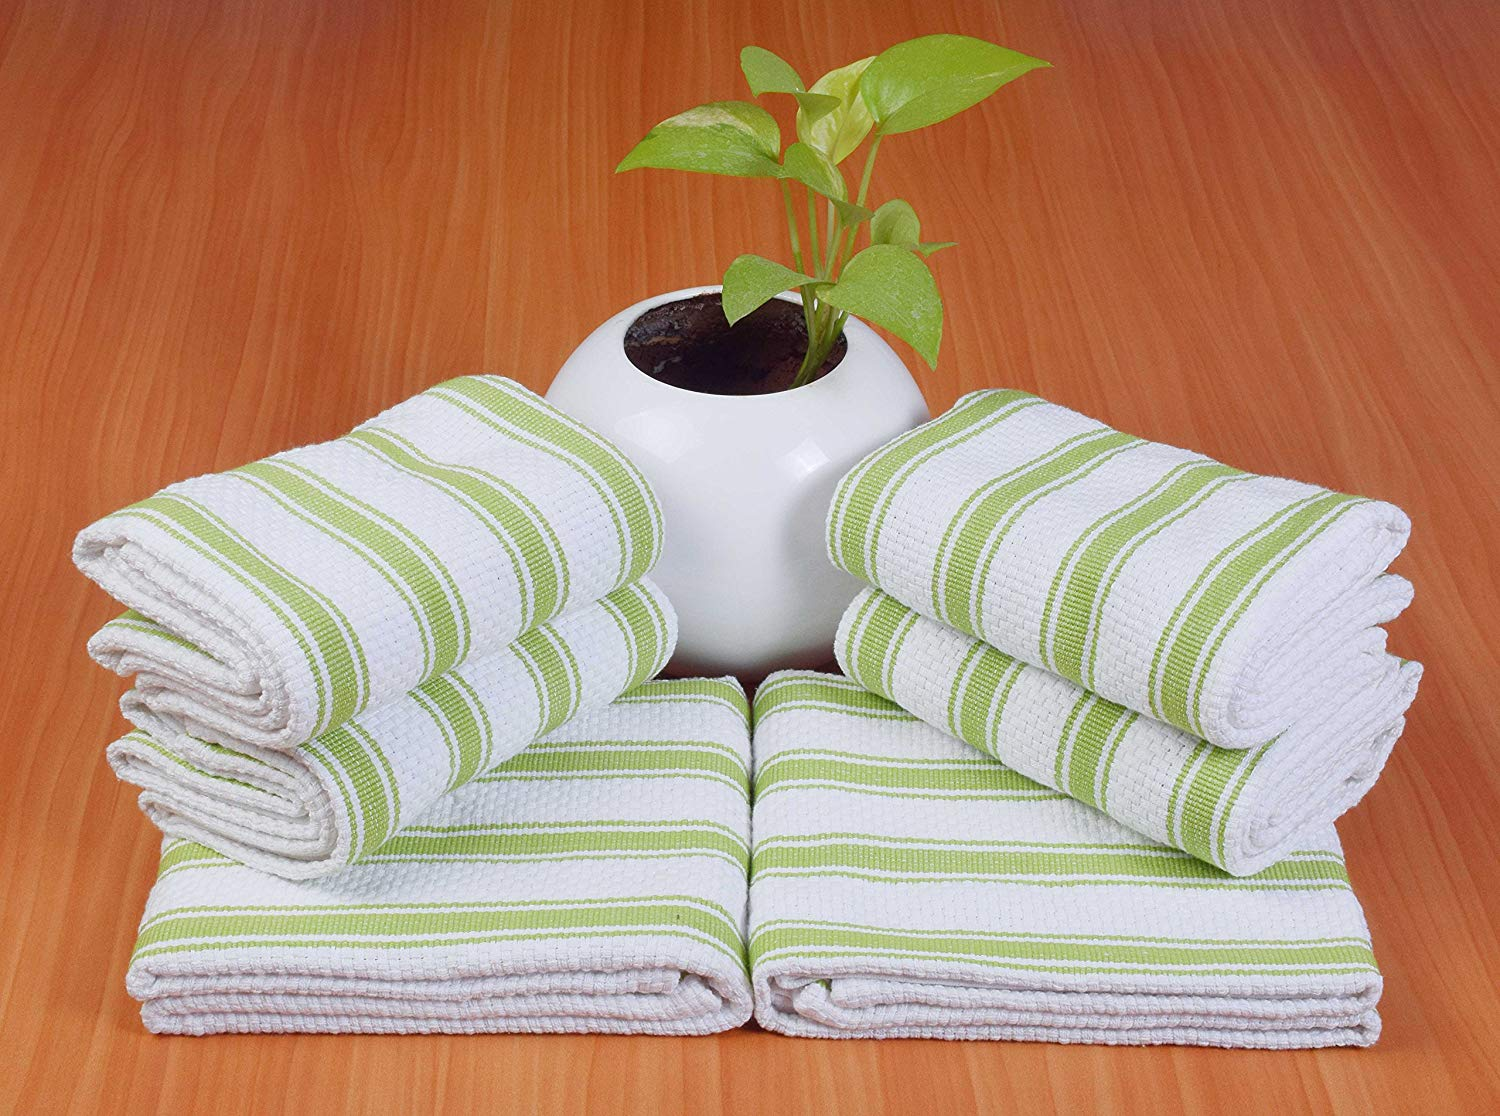 6 Pack Kitchen Towels, 16x26, Lime Green Stripe, 100% Cotton, Cool & Crisp Basket Weave with Hanging Loop, Highly Absorbent, Professional Grade, Heavy Duty, Machine Washable